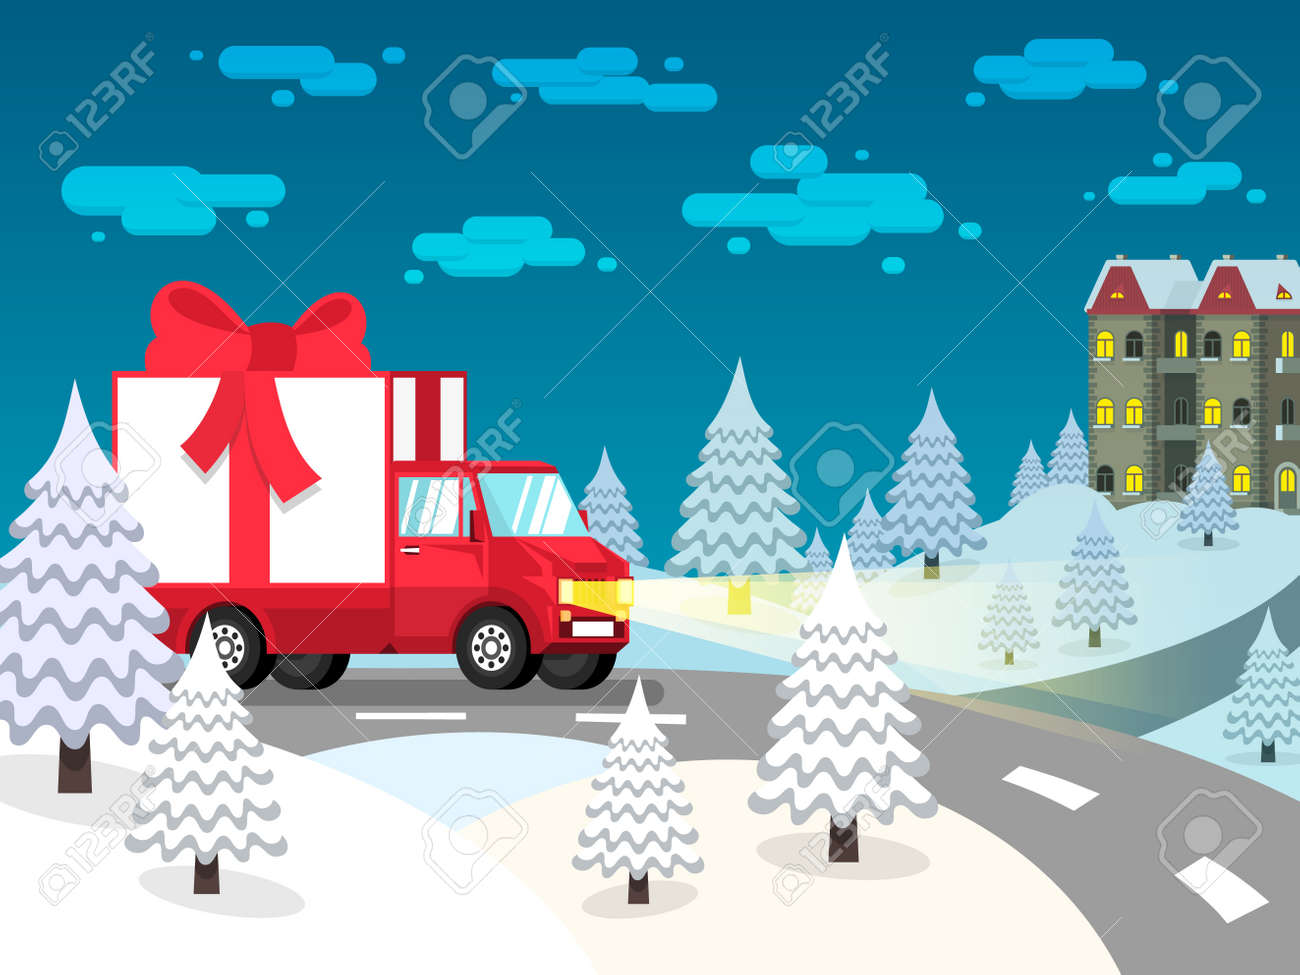 Truck loaded with gift box with a red bow rides on a snow-covered landscape with fir trees. Stock Vector - 92805274